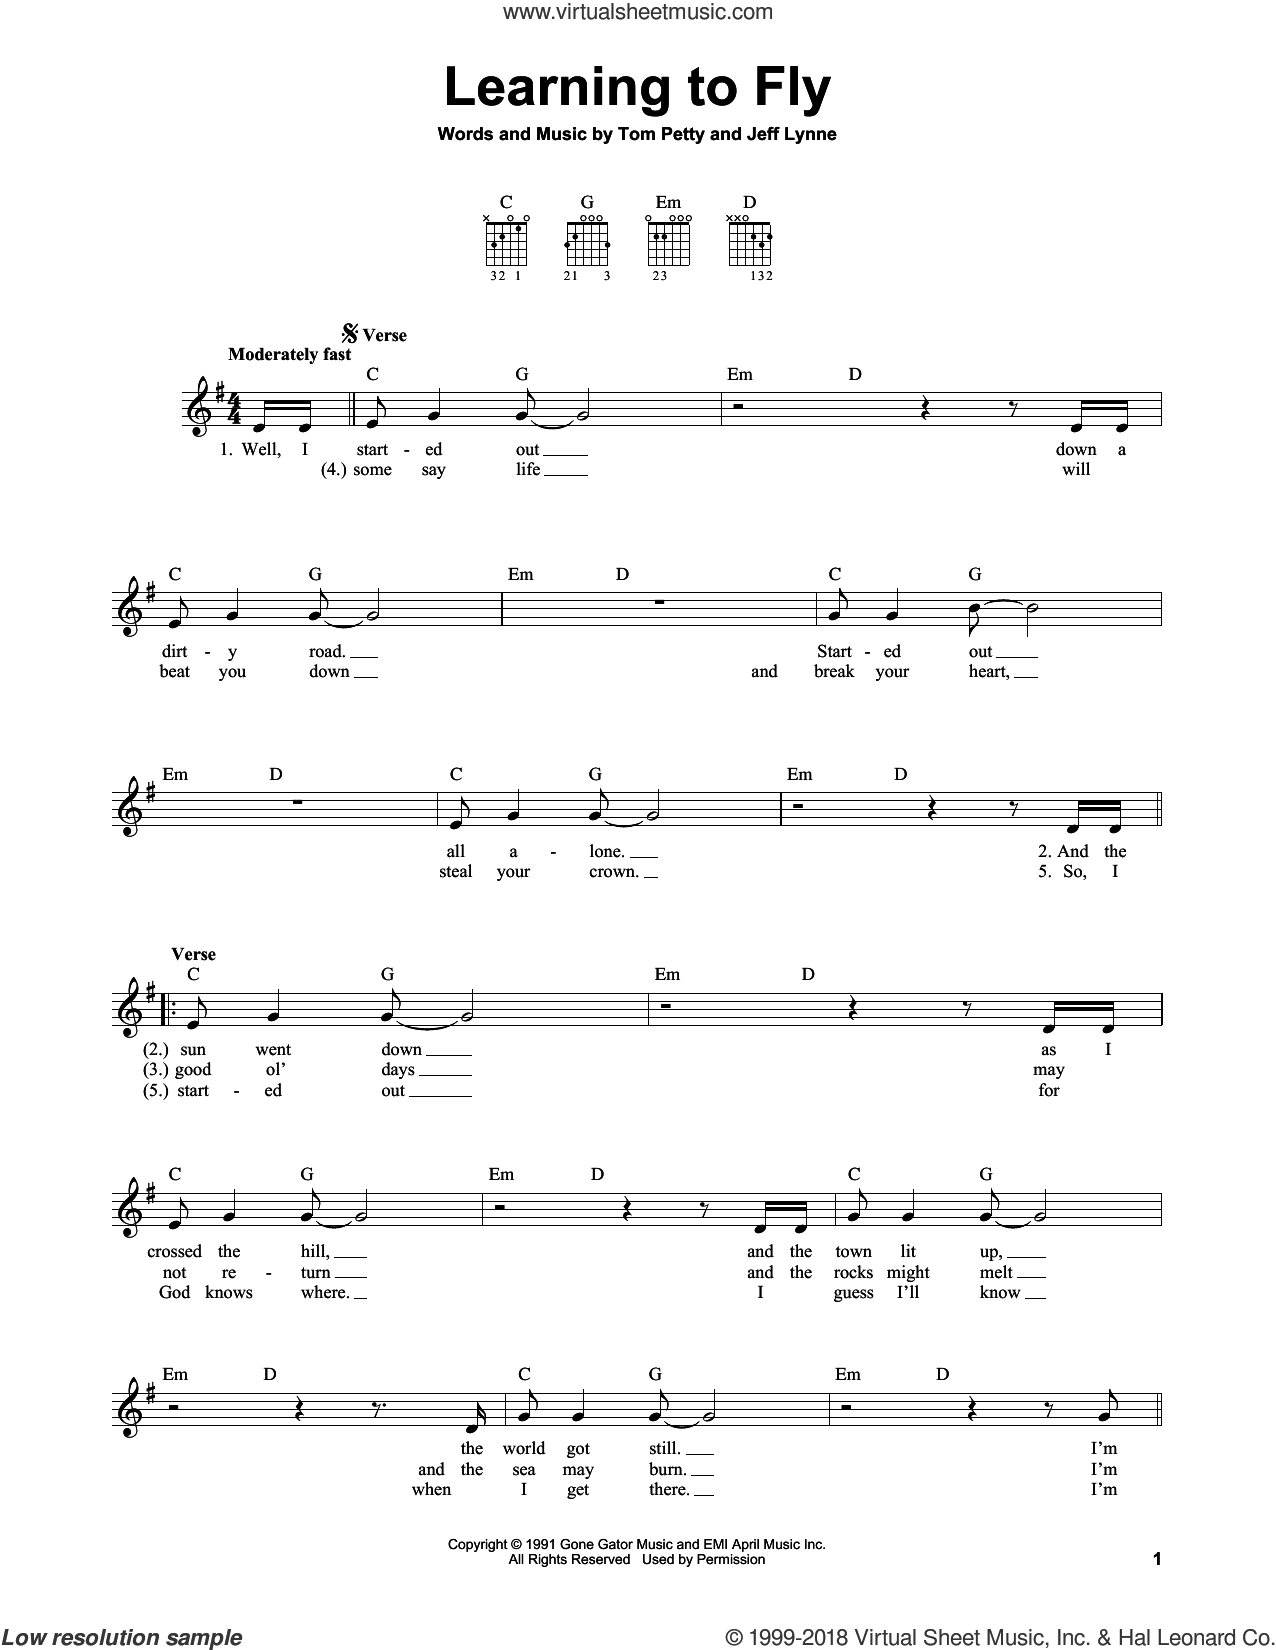 Learning To Fly sheet music for guitar solo (chords) by Tom Petty and Jeff Lynne. Score Image Preview.